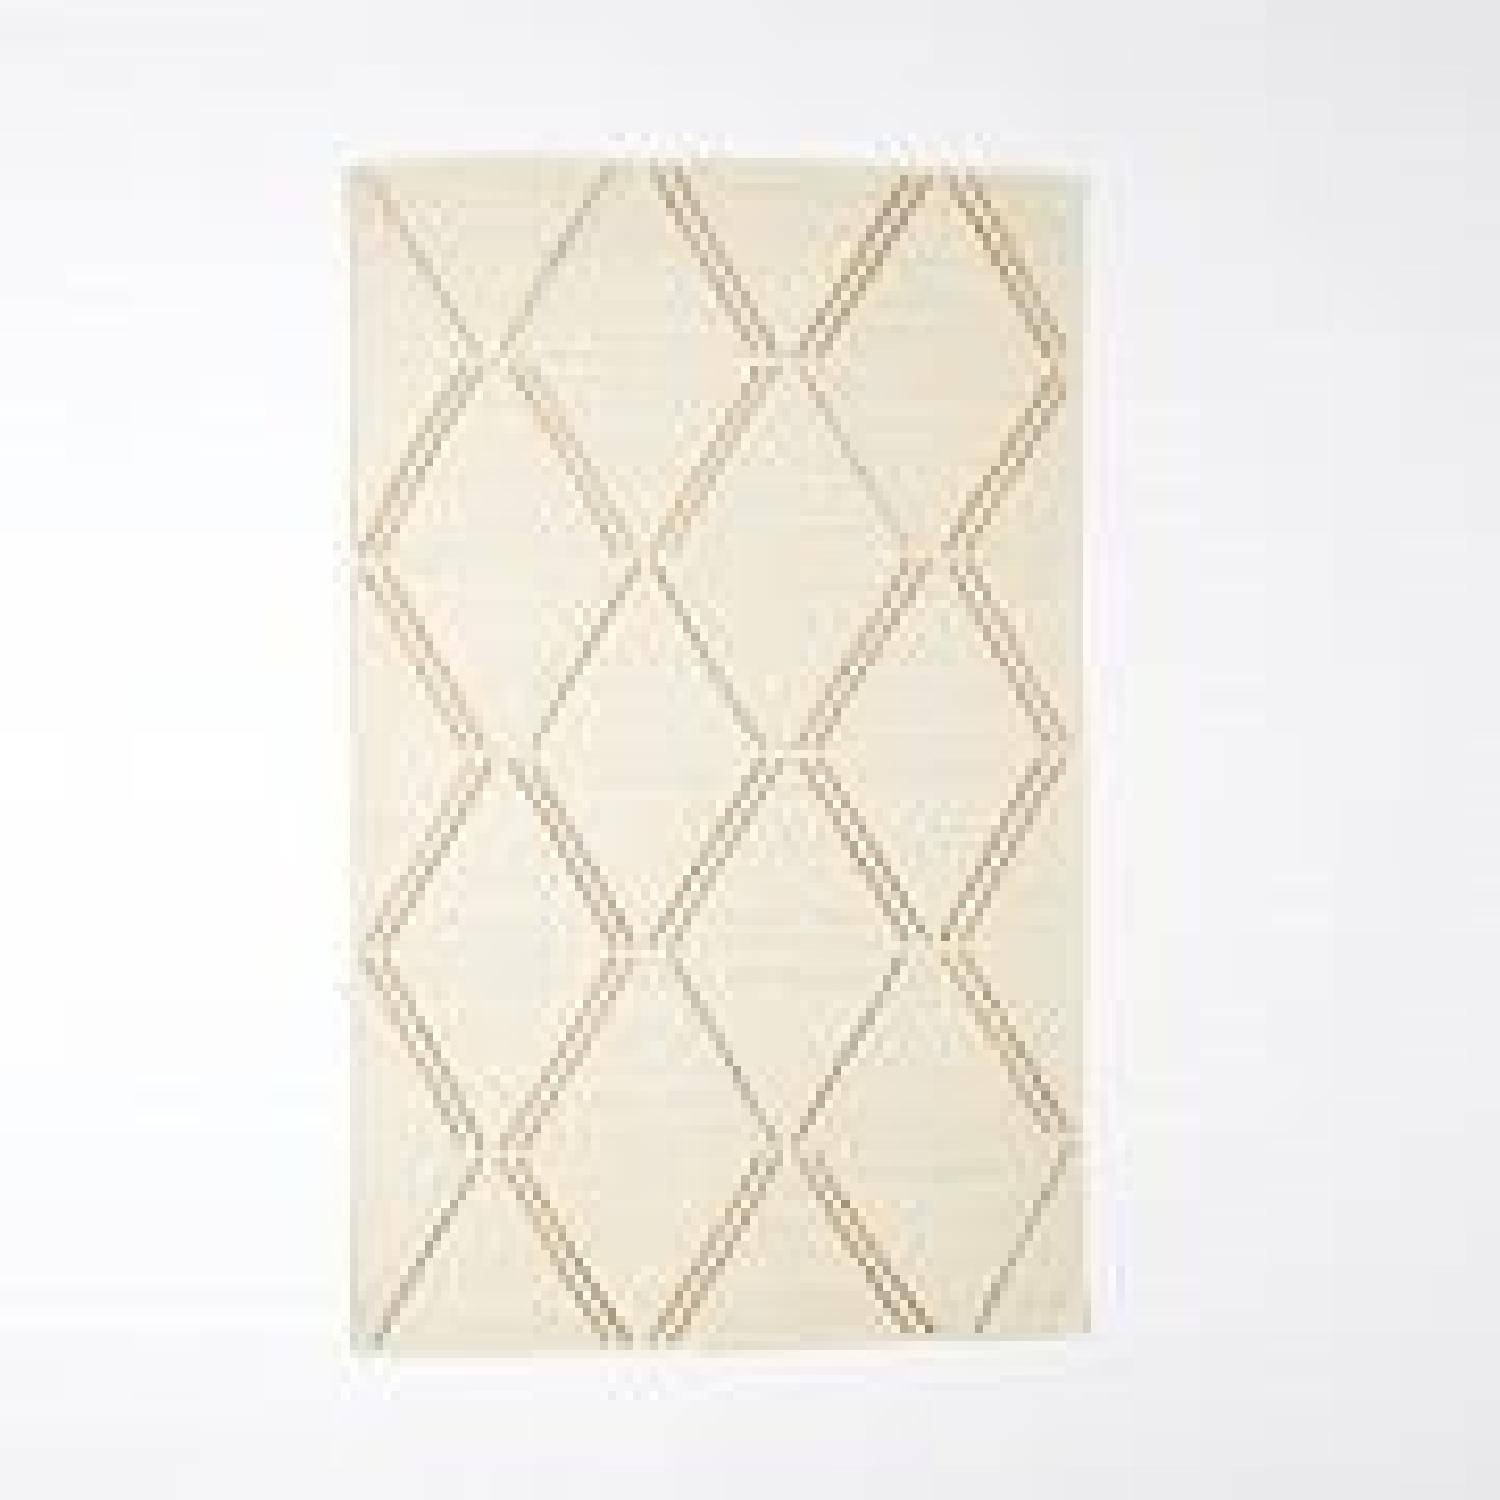 West Elm Affine Metallic Jute Rug in Ivory/Natural